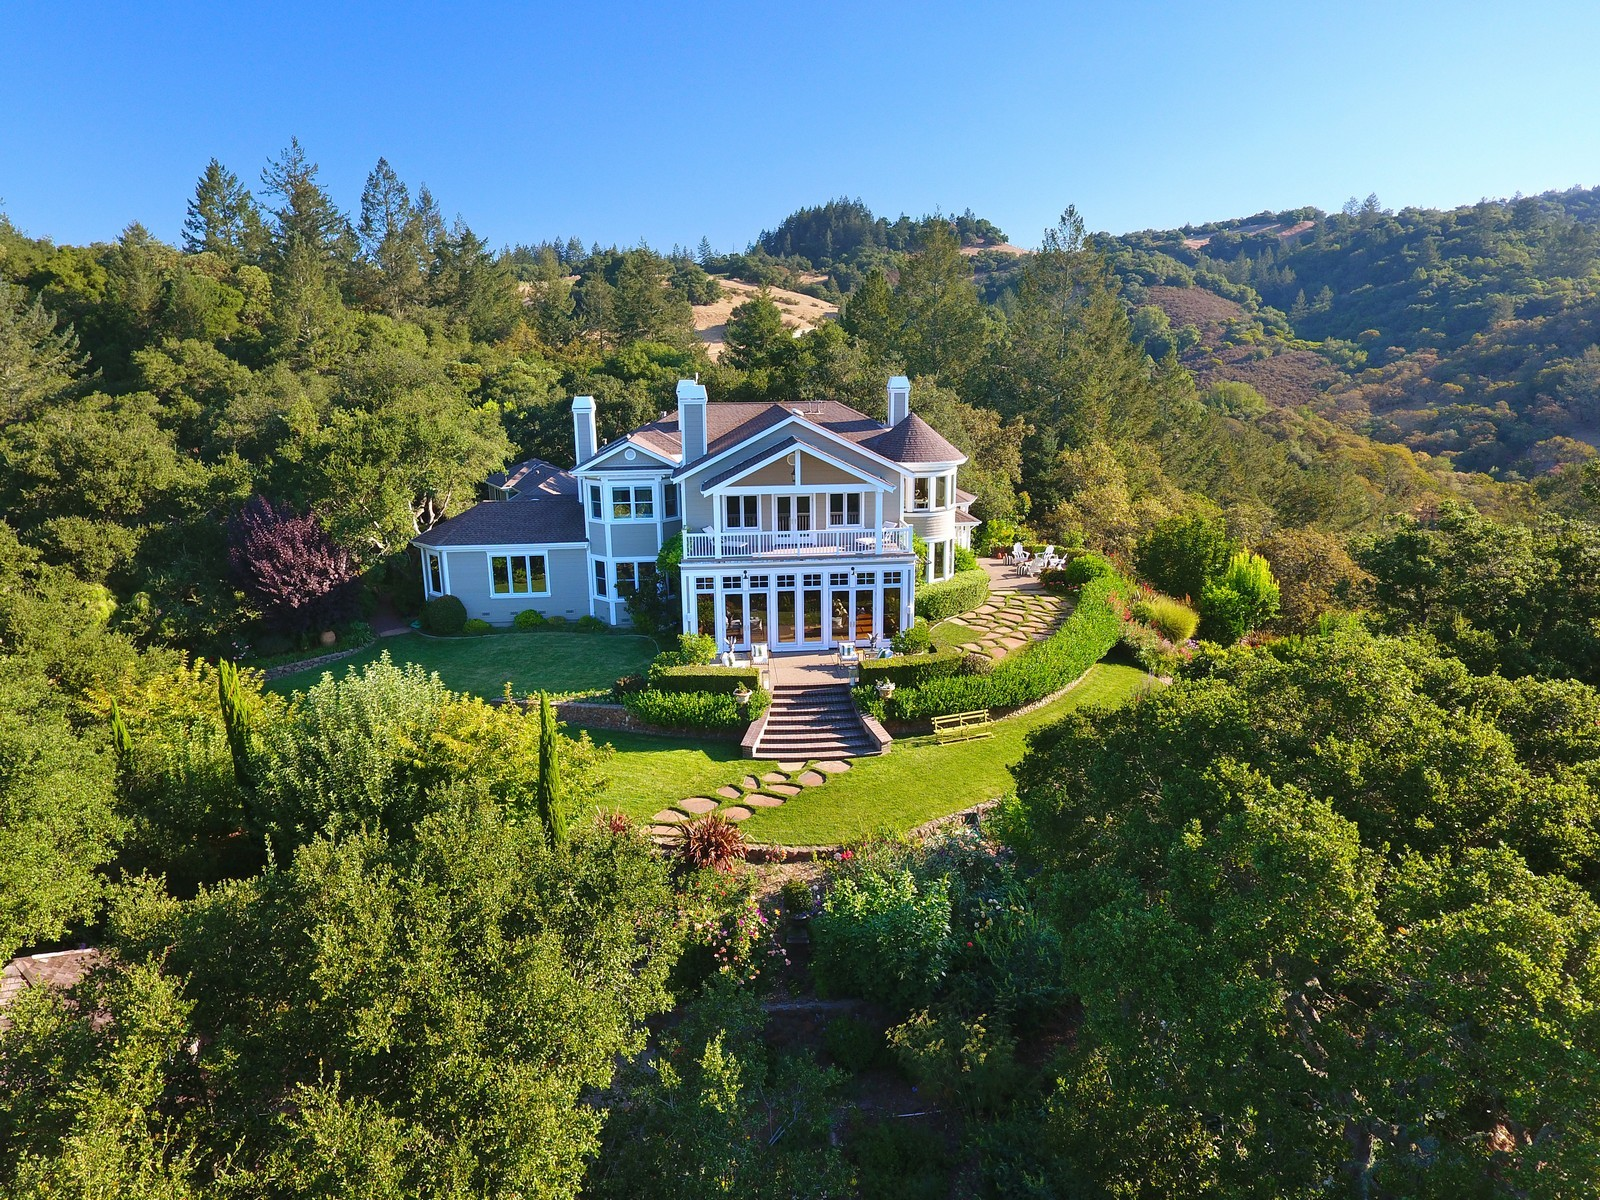 Single Family Home for Sale at Redwood Hills Ranch Estate 1920 Redwood Hill Santa Rosa, California 95404 United States